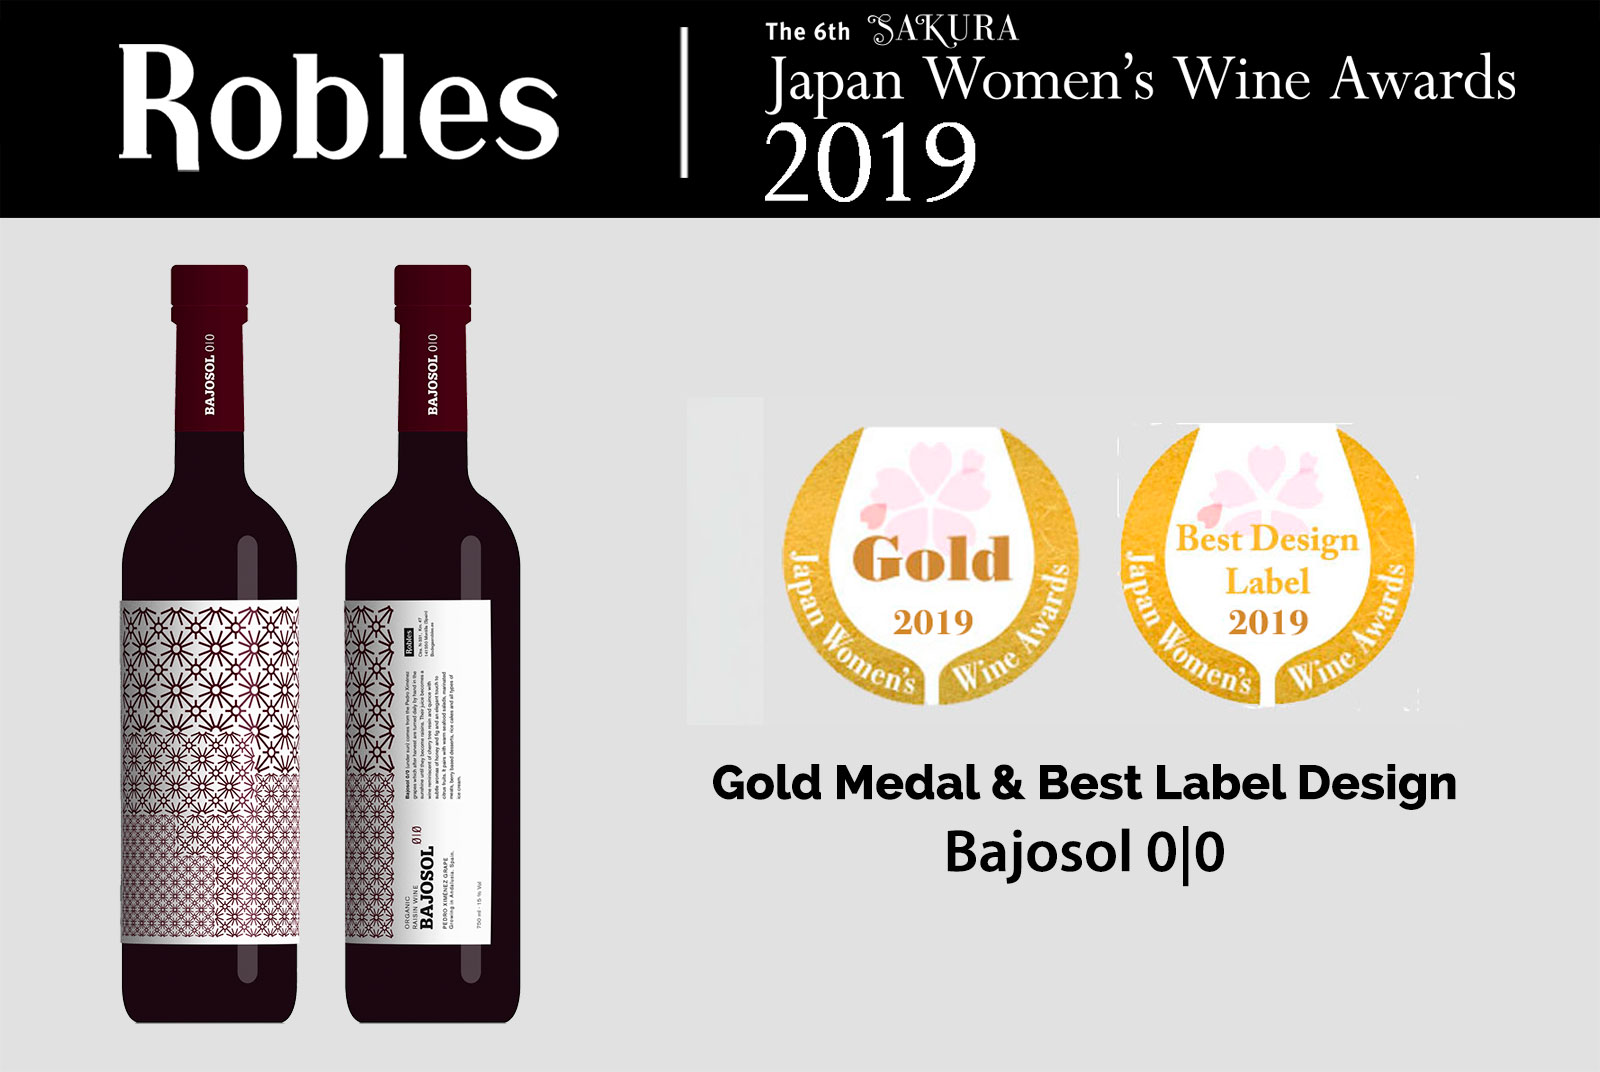 Gold Medal and Best Label Design for Bajosol 0|0 at Sakura 2019